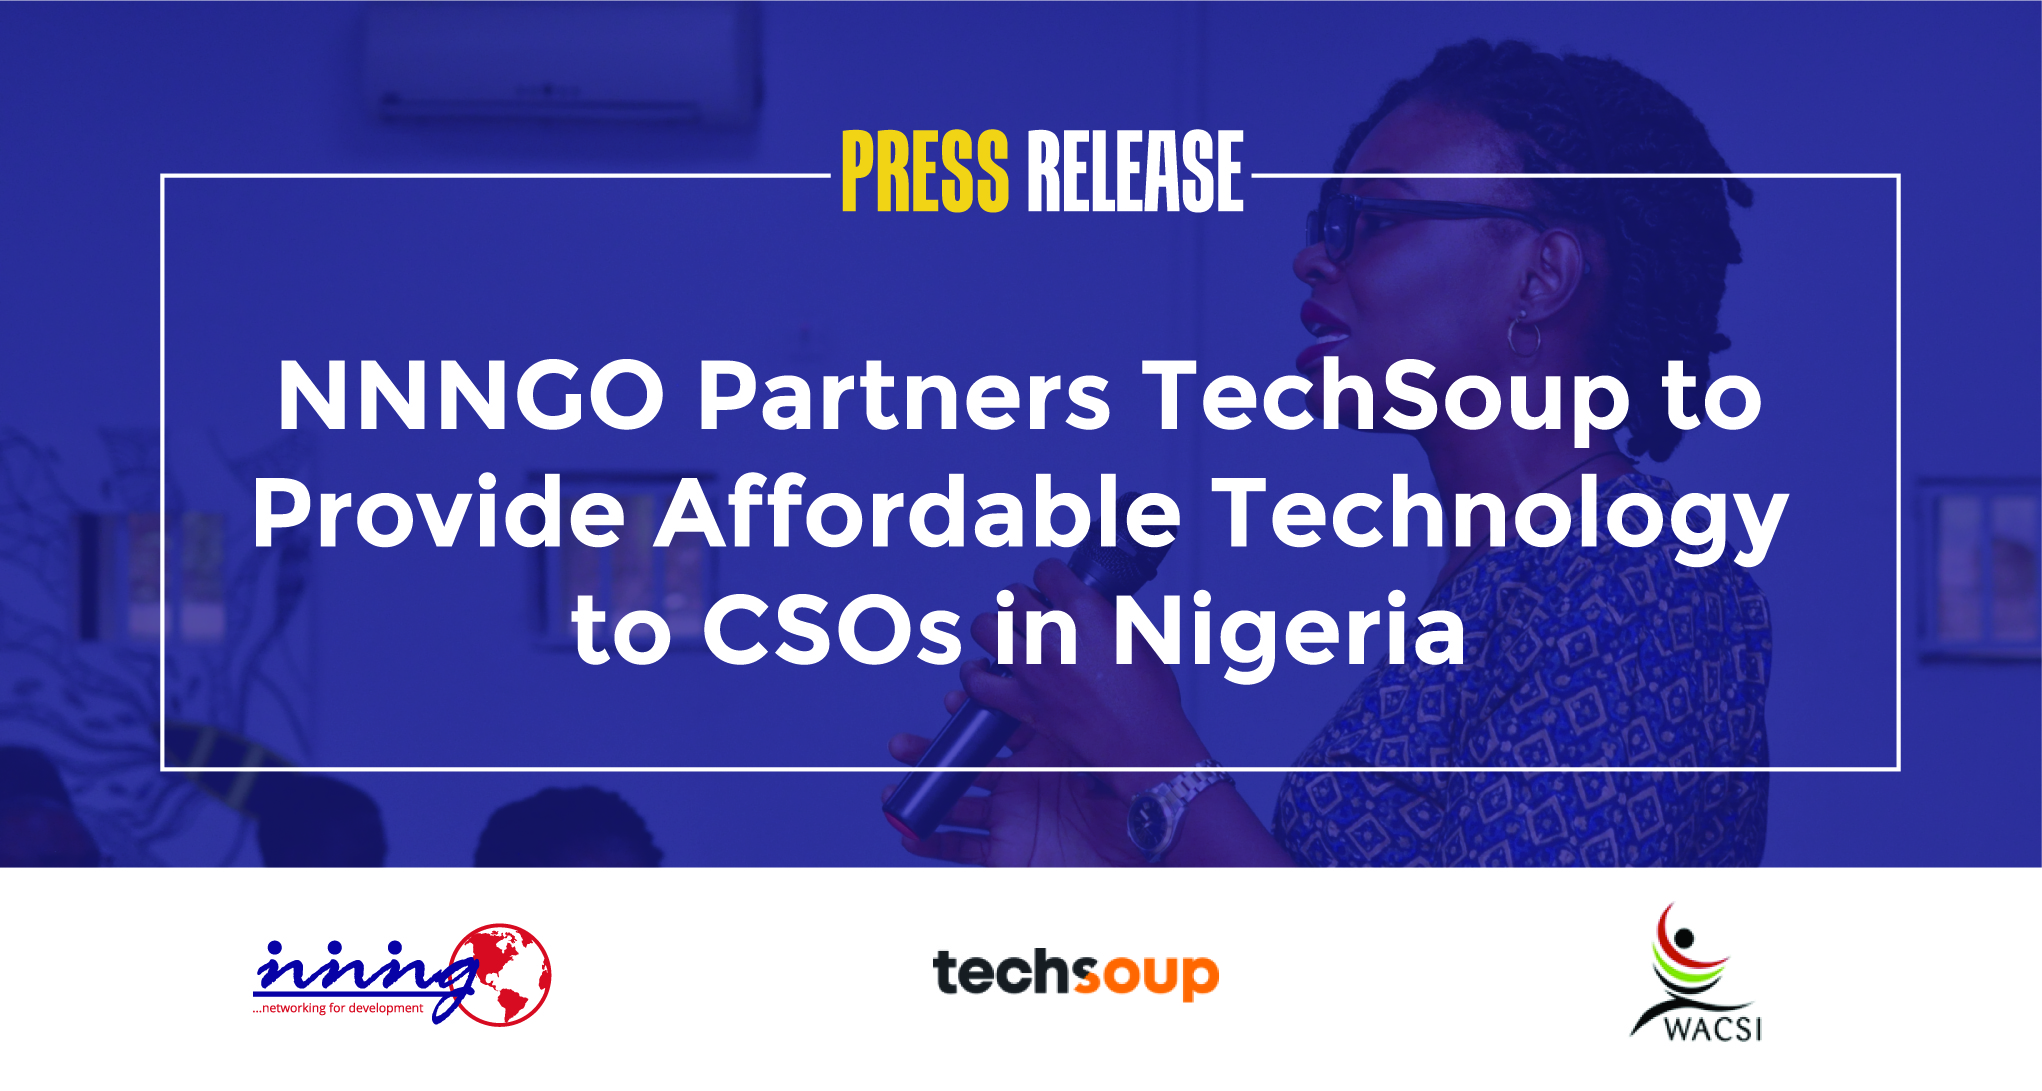 Press Release – NNNGO Partners TechSoup to Provide Affordable Technology to CSOs in Nigeria